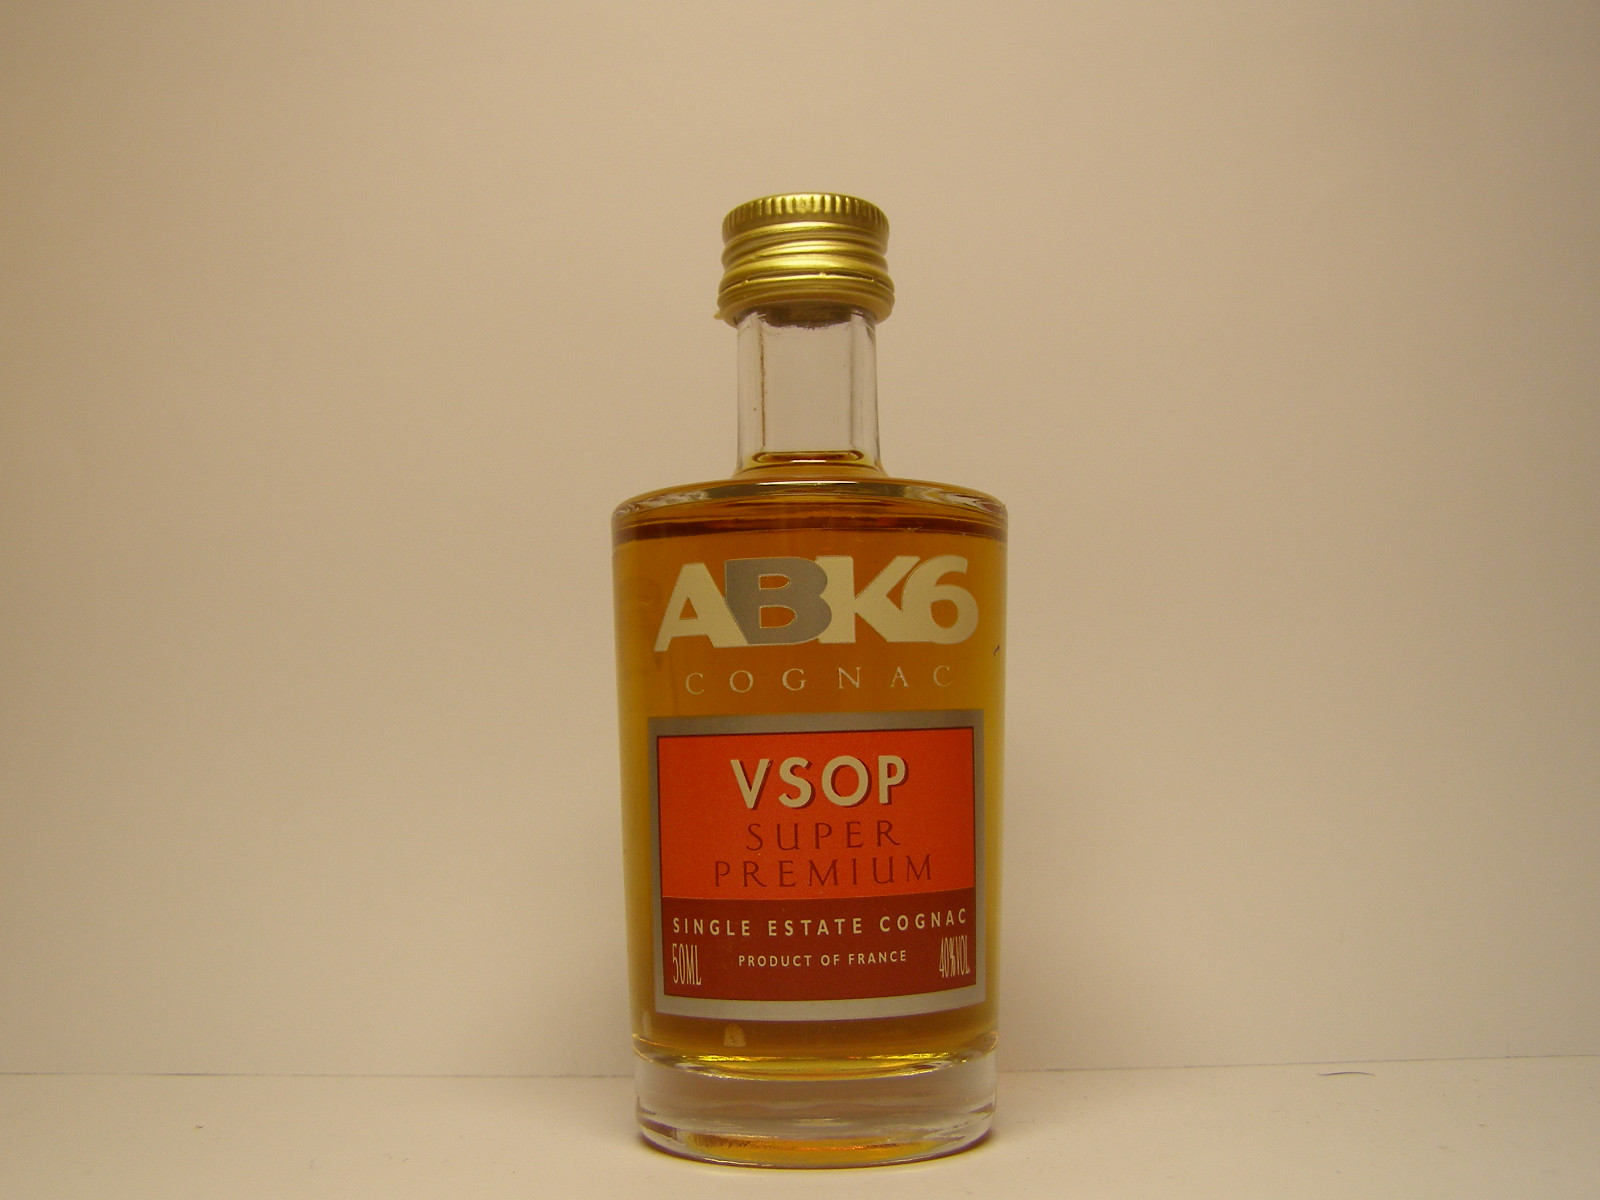 VSOP Super Premium Single Estate Cognac